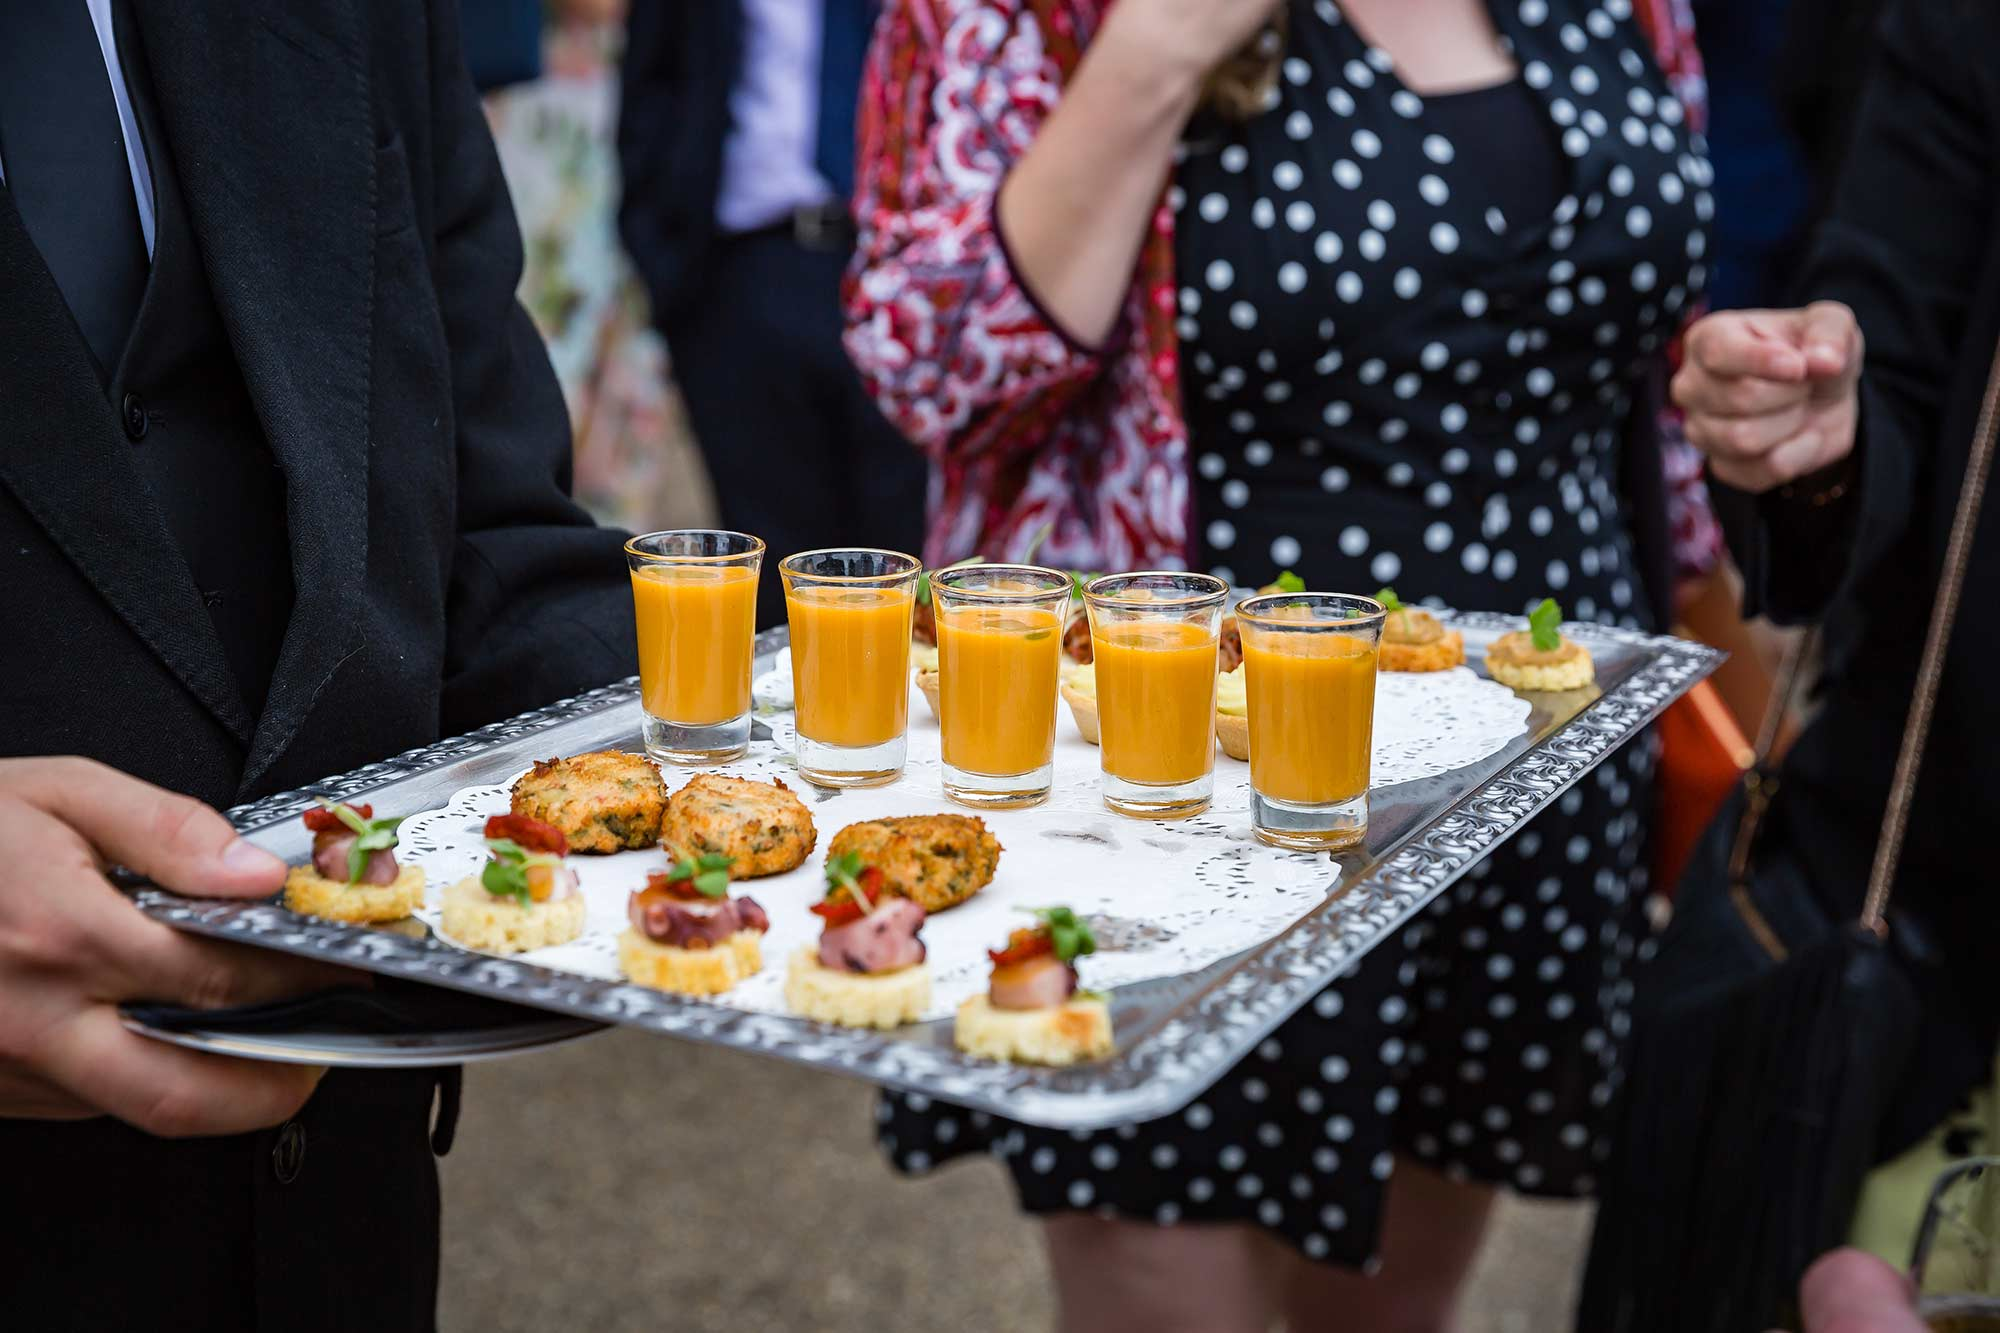 canapés at Brocket Hall